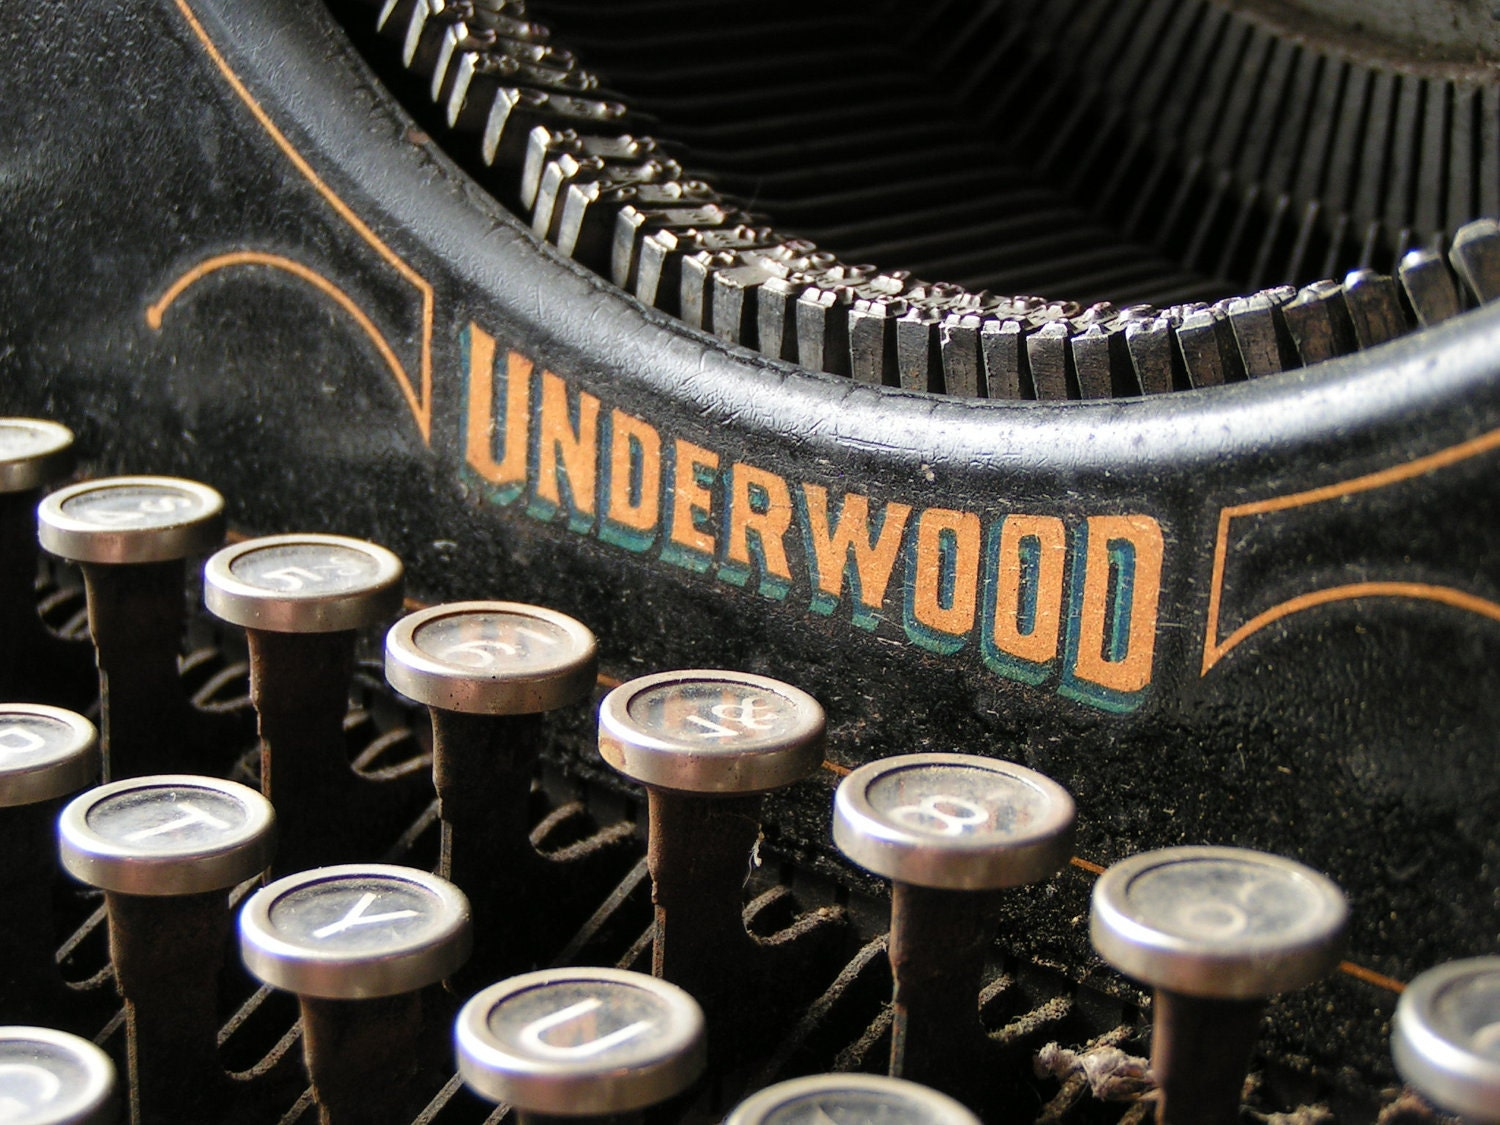 Vintage Underwood No. 5 Typewriter - CopperAndTin